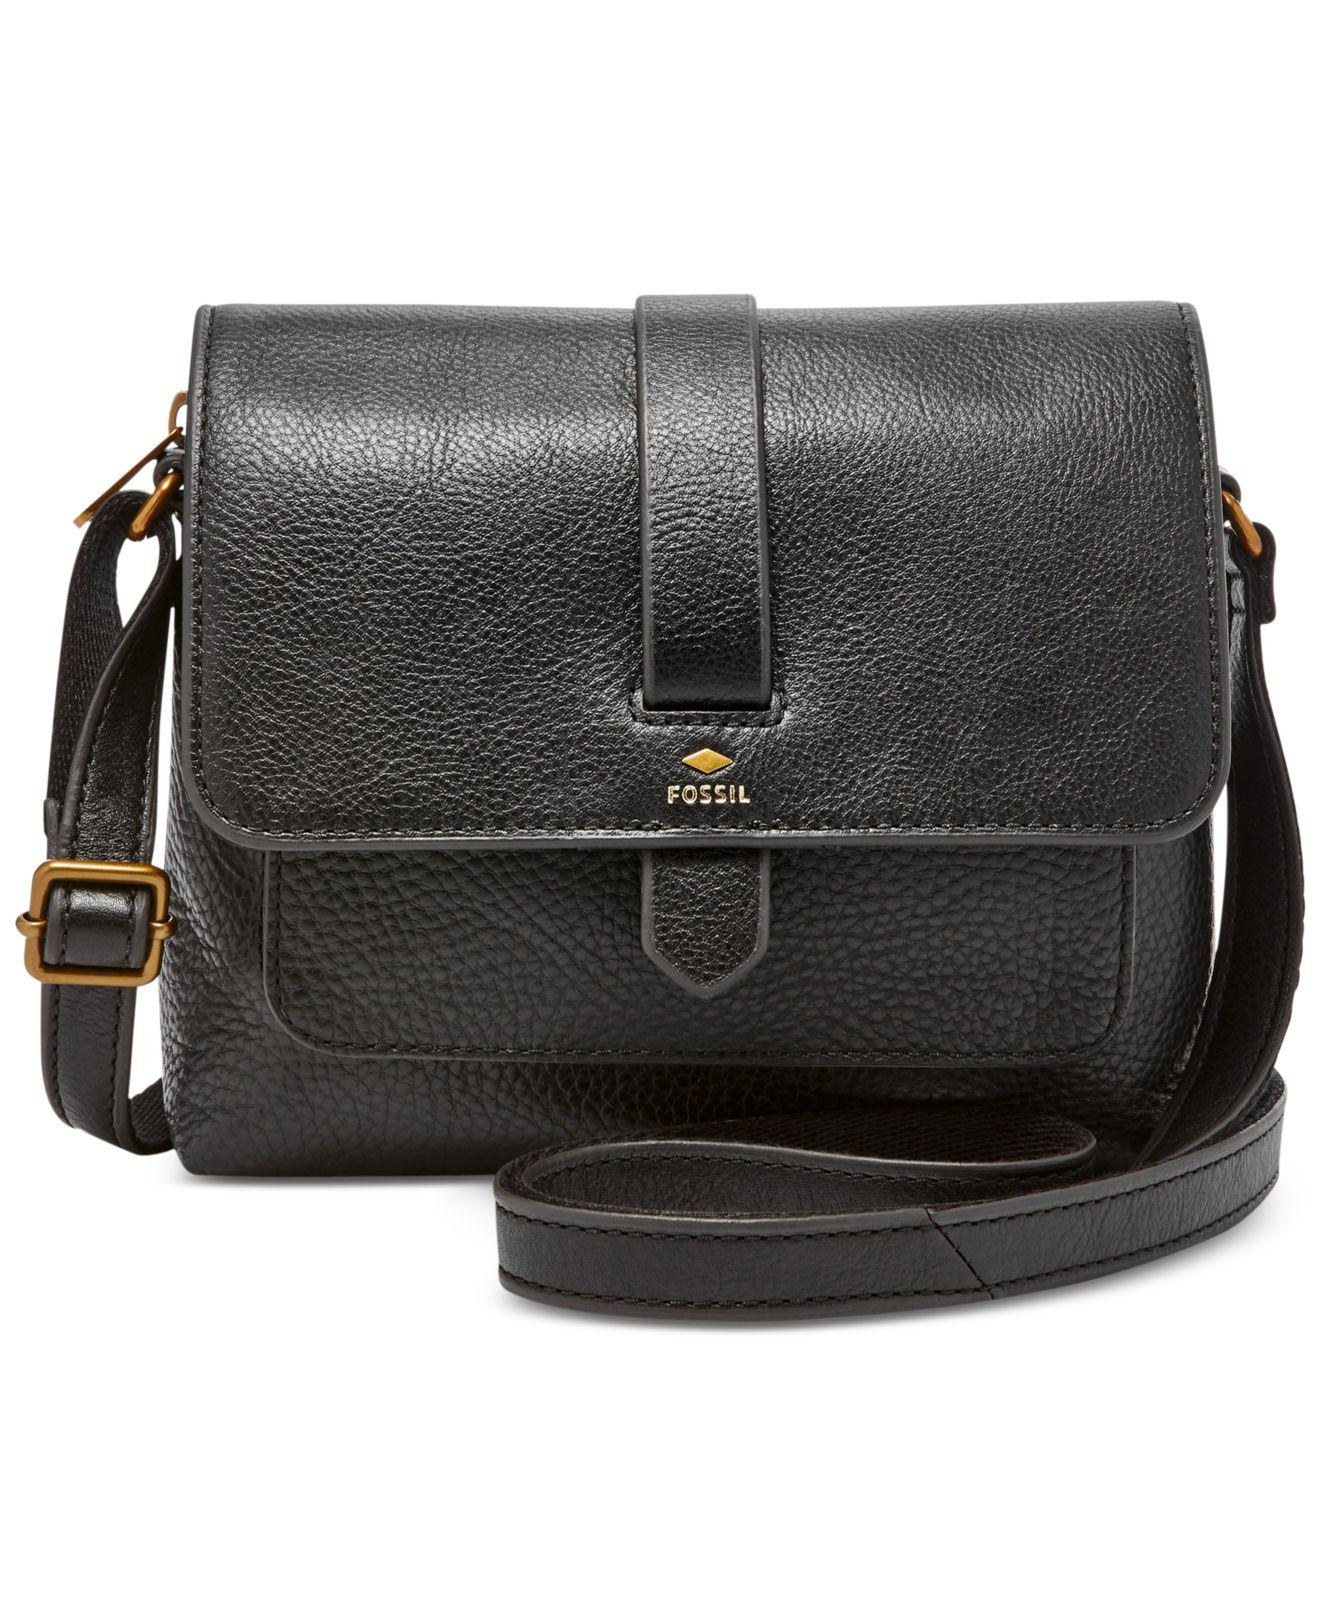 9d35b9e9b325 Lyst - Fossil Kinley Small Leather Across Body Bag in Black - Save 7%